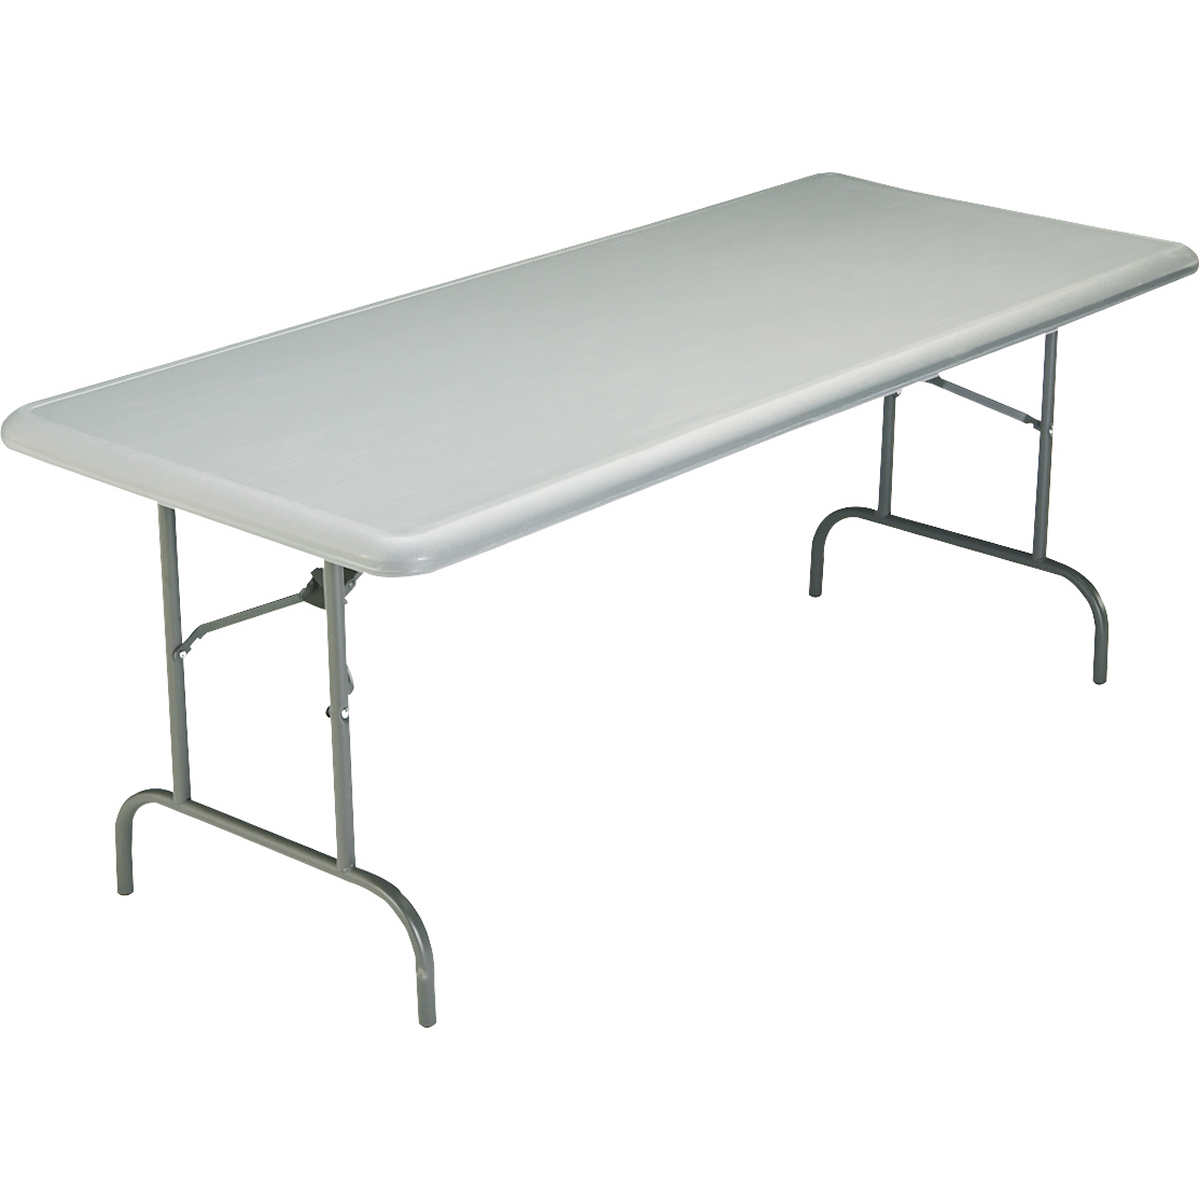 "Iceberg IndestrucTable TOO 30"" x 96"" Charcoal Folding Table"